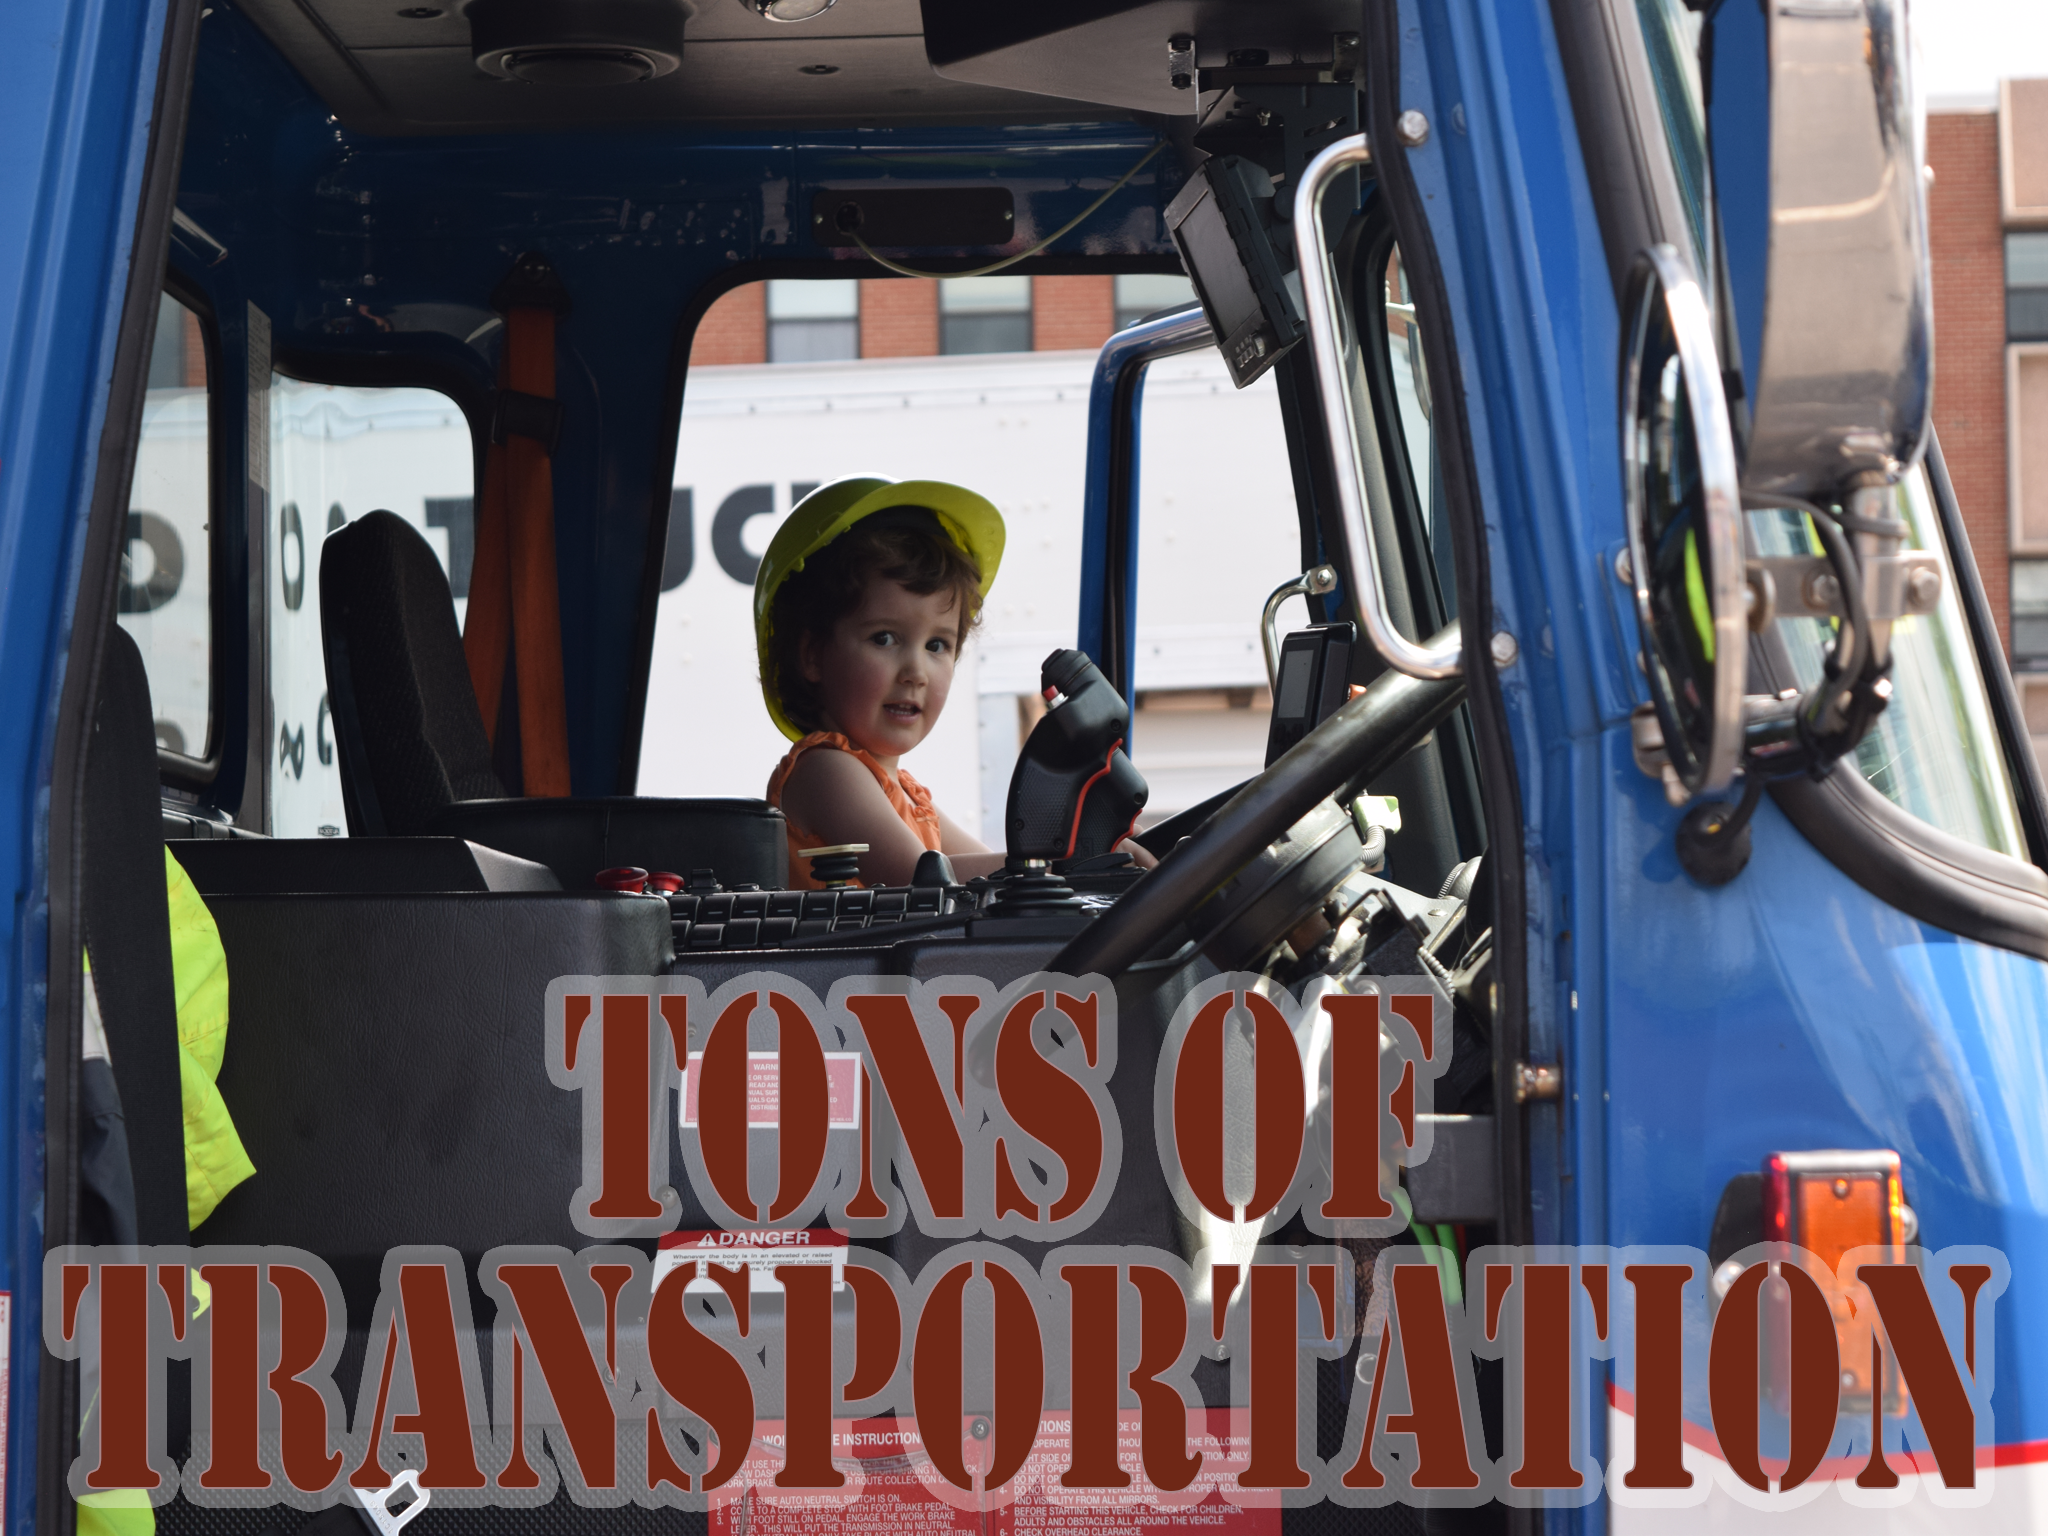 TonsOfTransportationGraphic